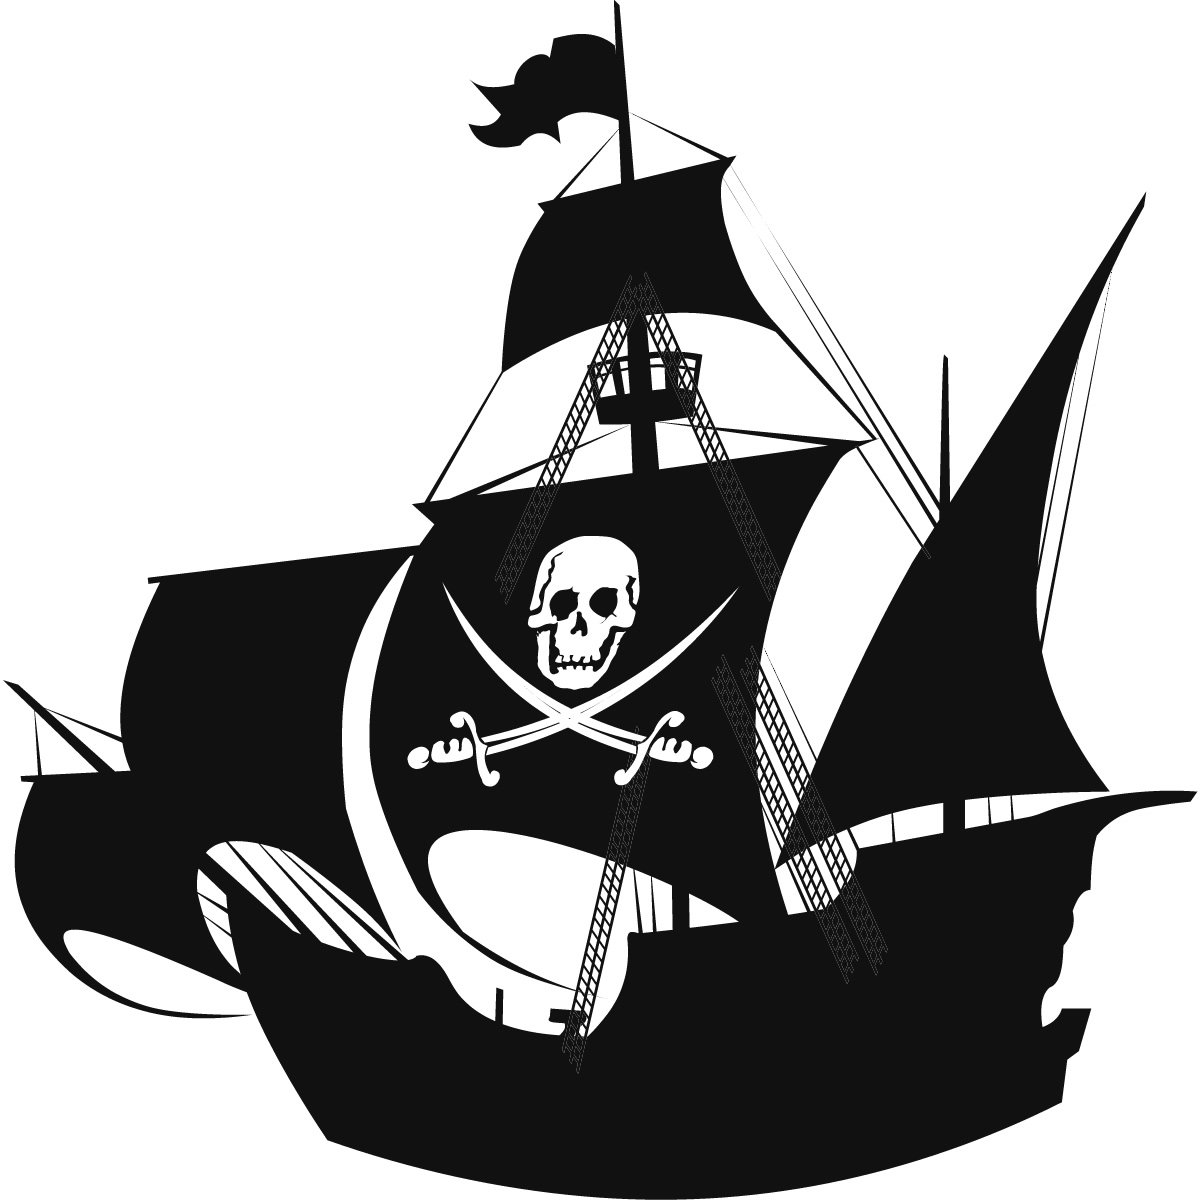 Pirate ship clipart kid 6.